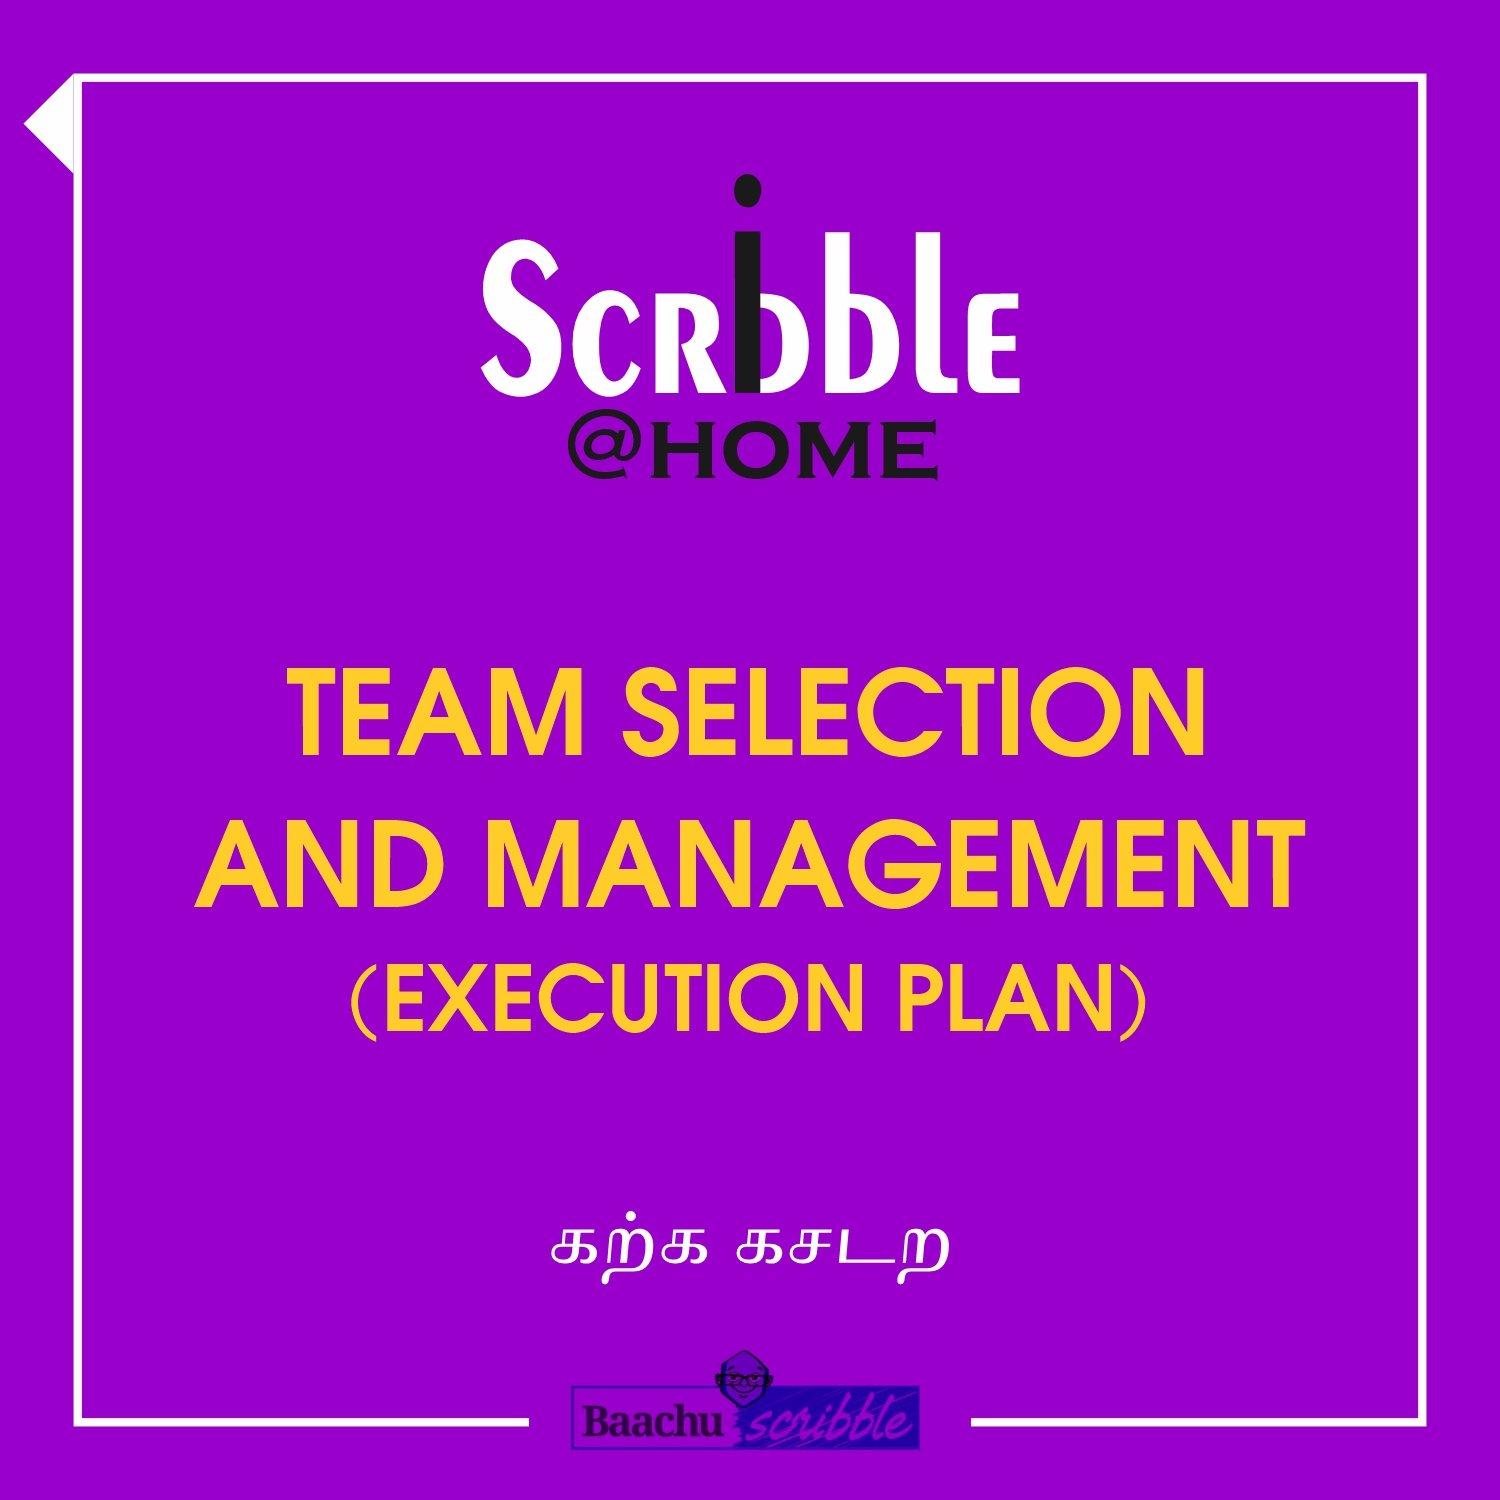 Team Selection and Management (Execution Plan)